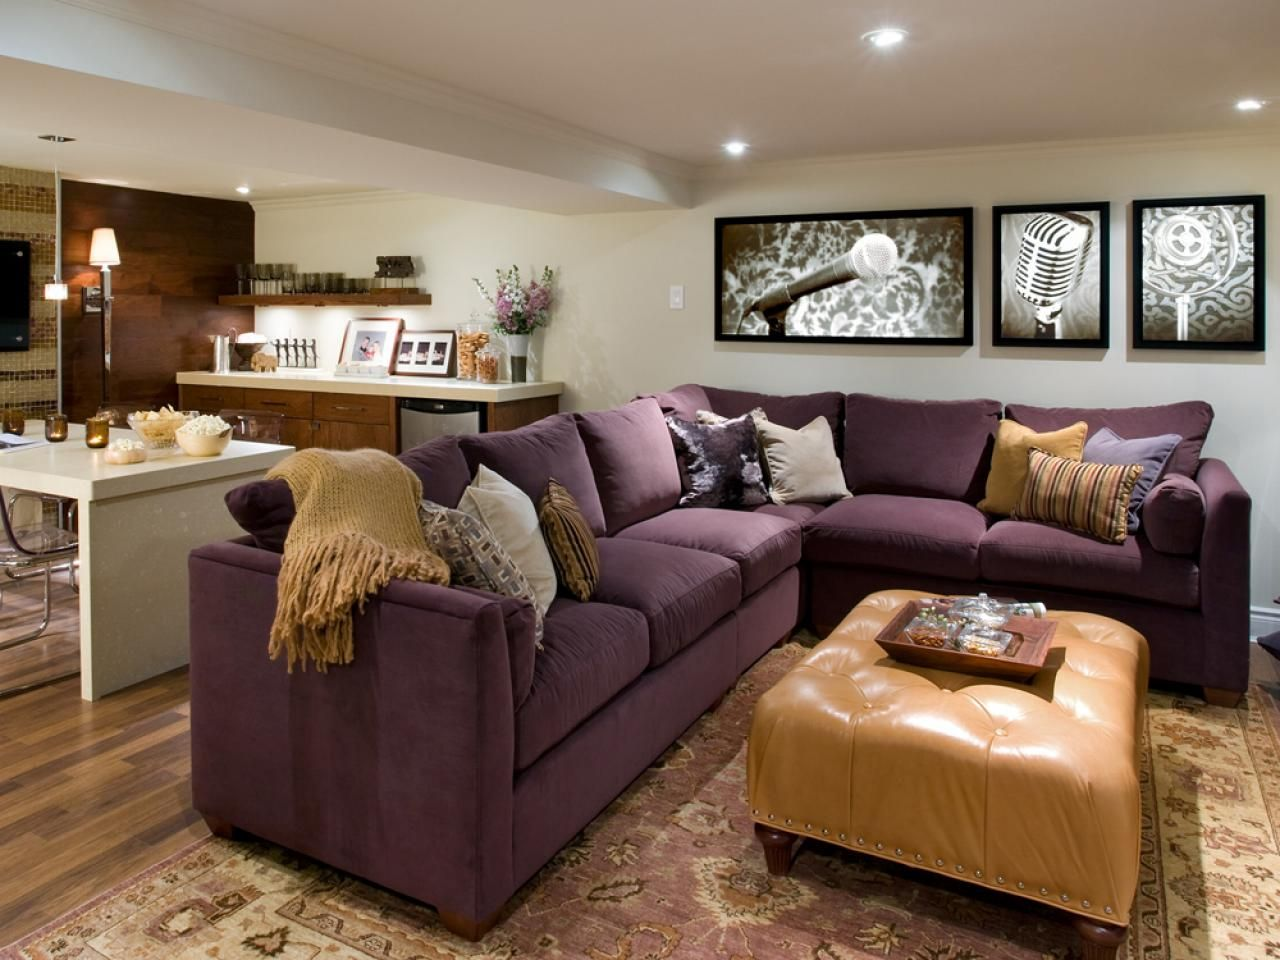 10 Chic Basements By Candice Olson Decorating And Design Ideas